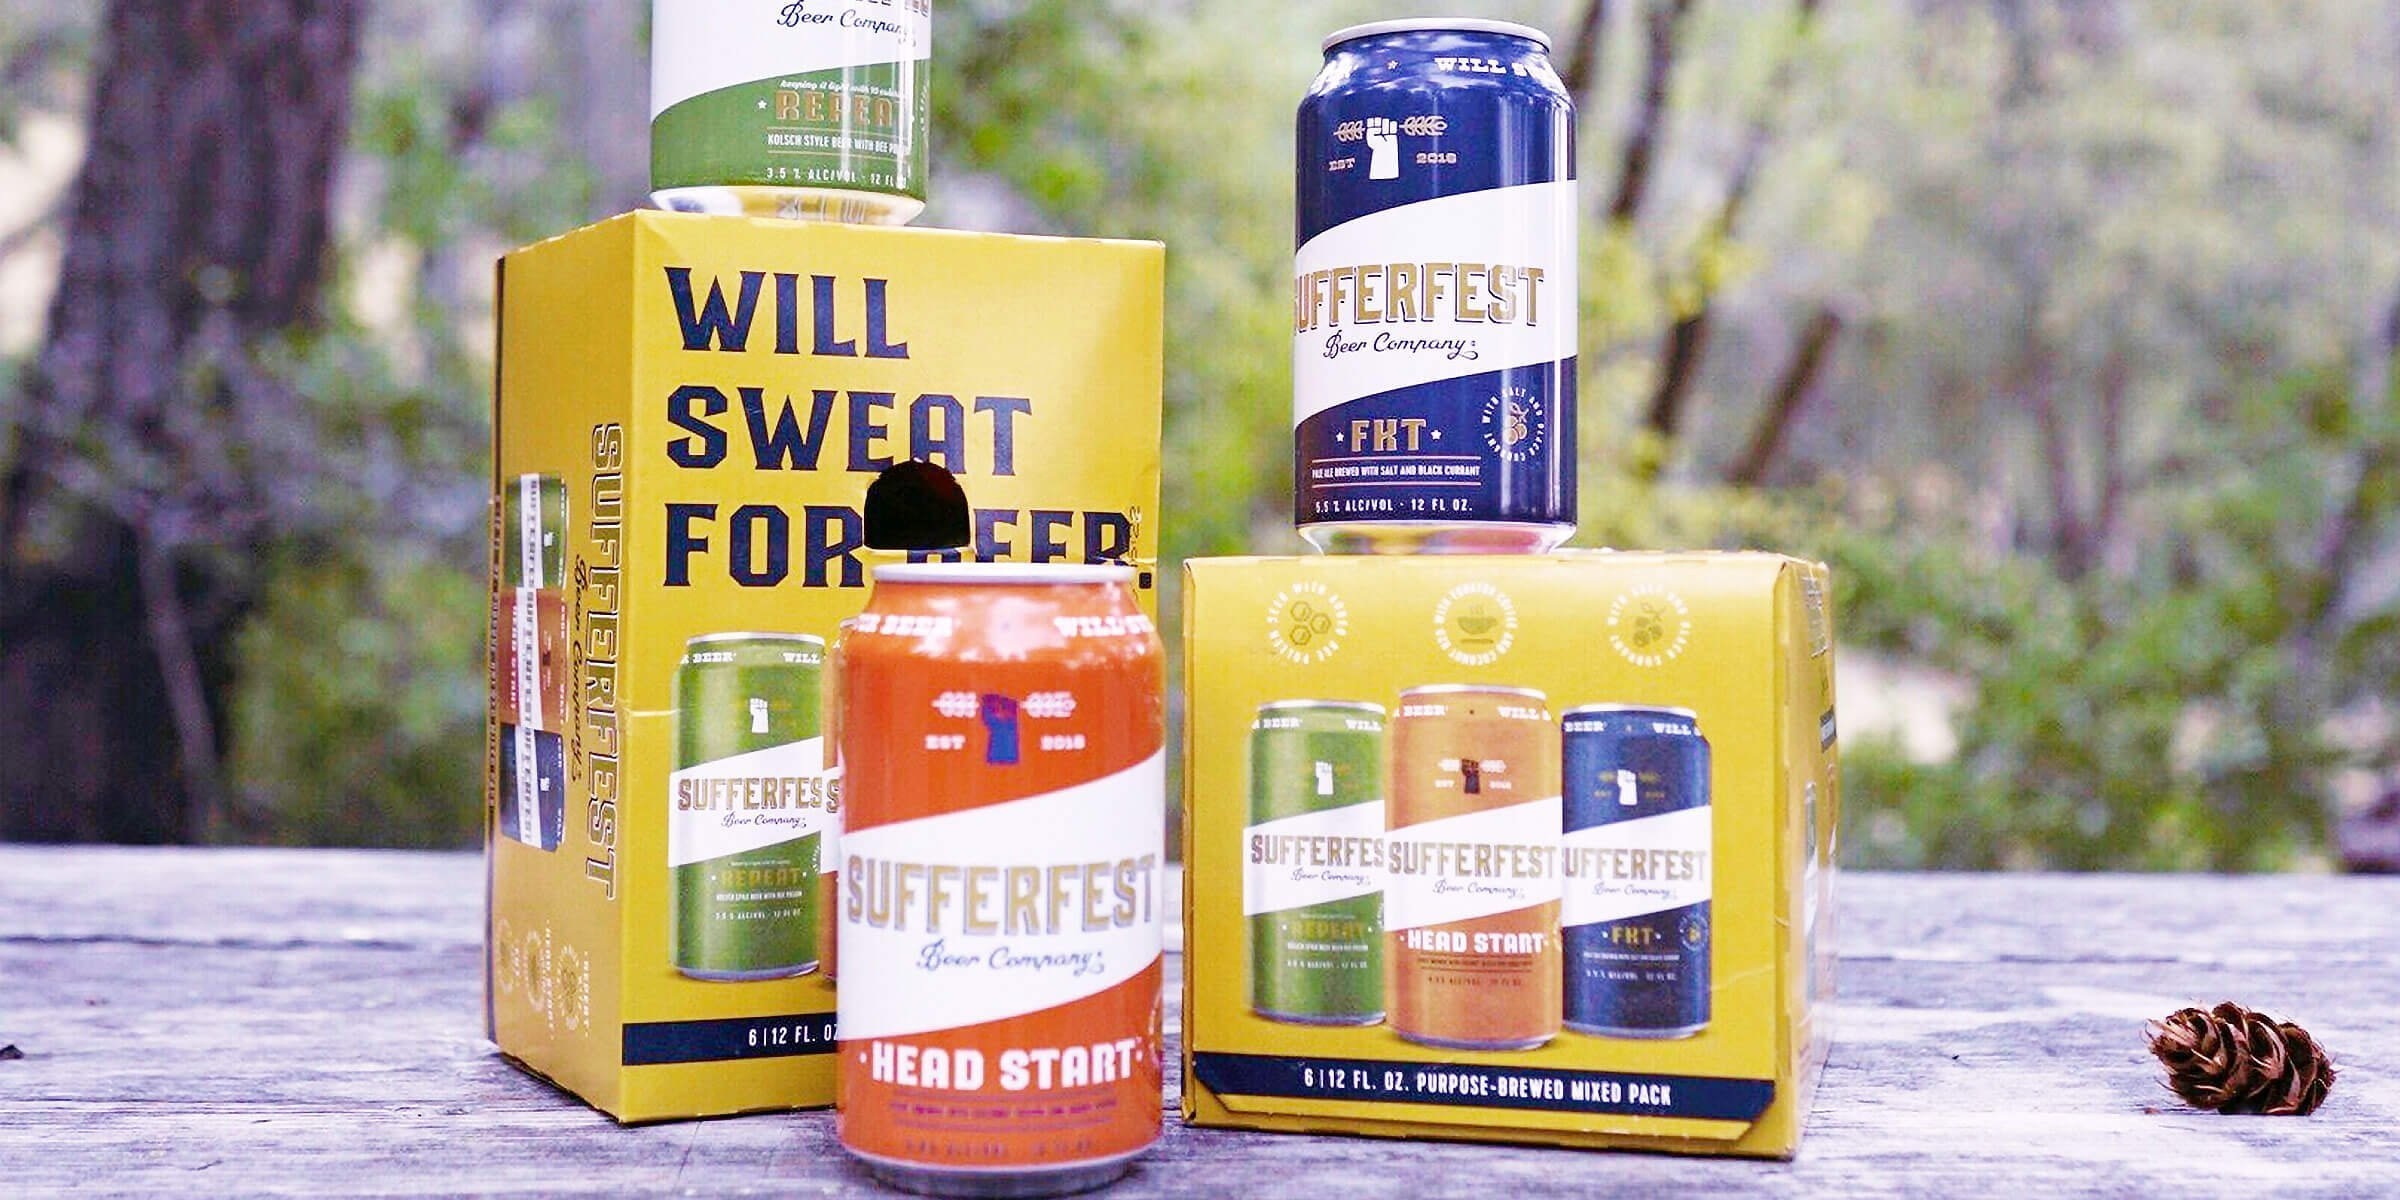 Sufferfest Beer Company introduces their first stout, Head Start and a Variety Pack, including Repeat, FKT (Fastest Known Time) and Head Start.